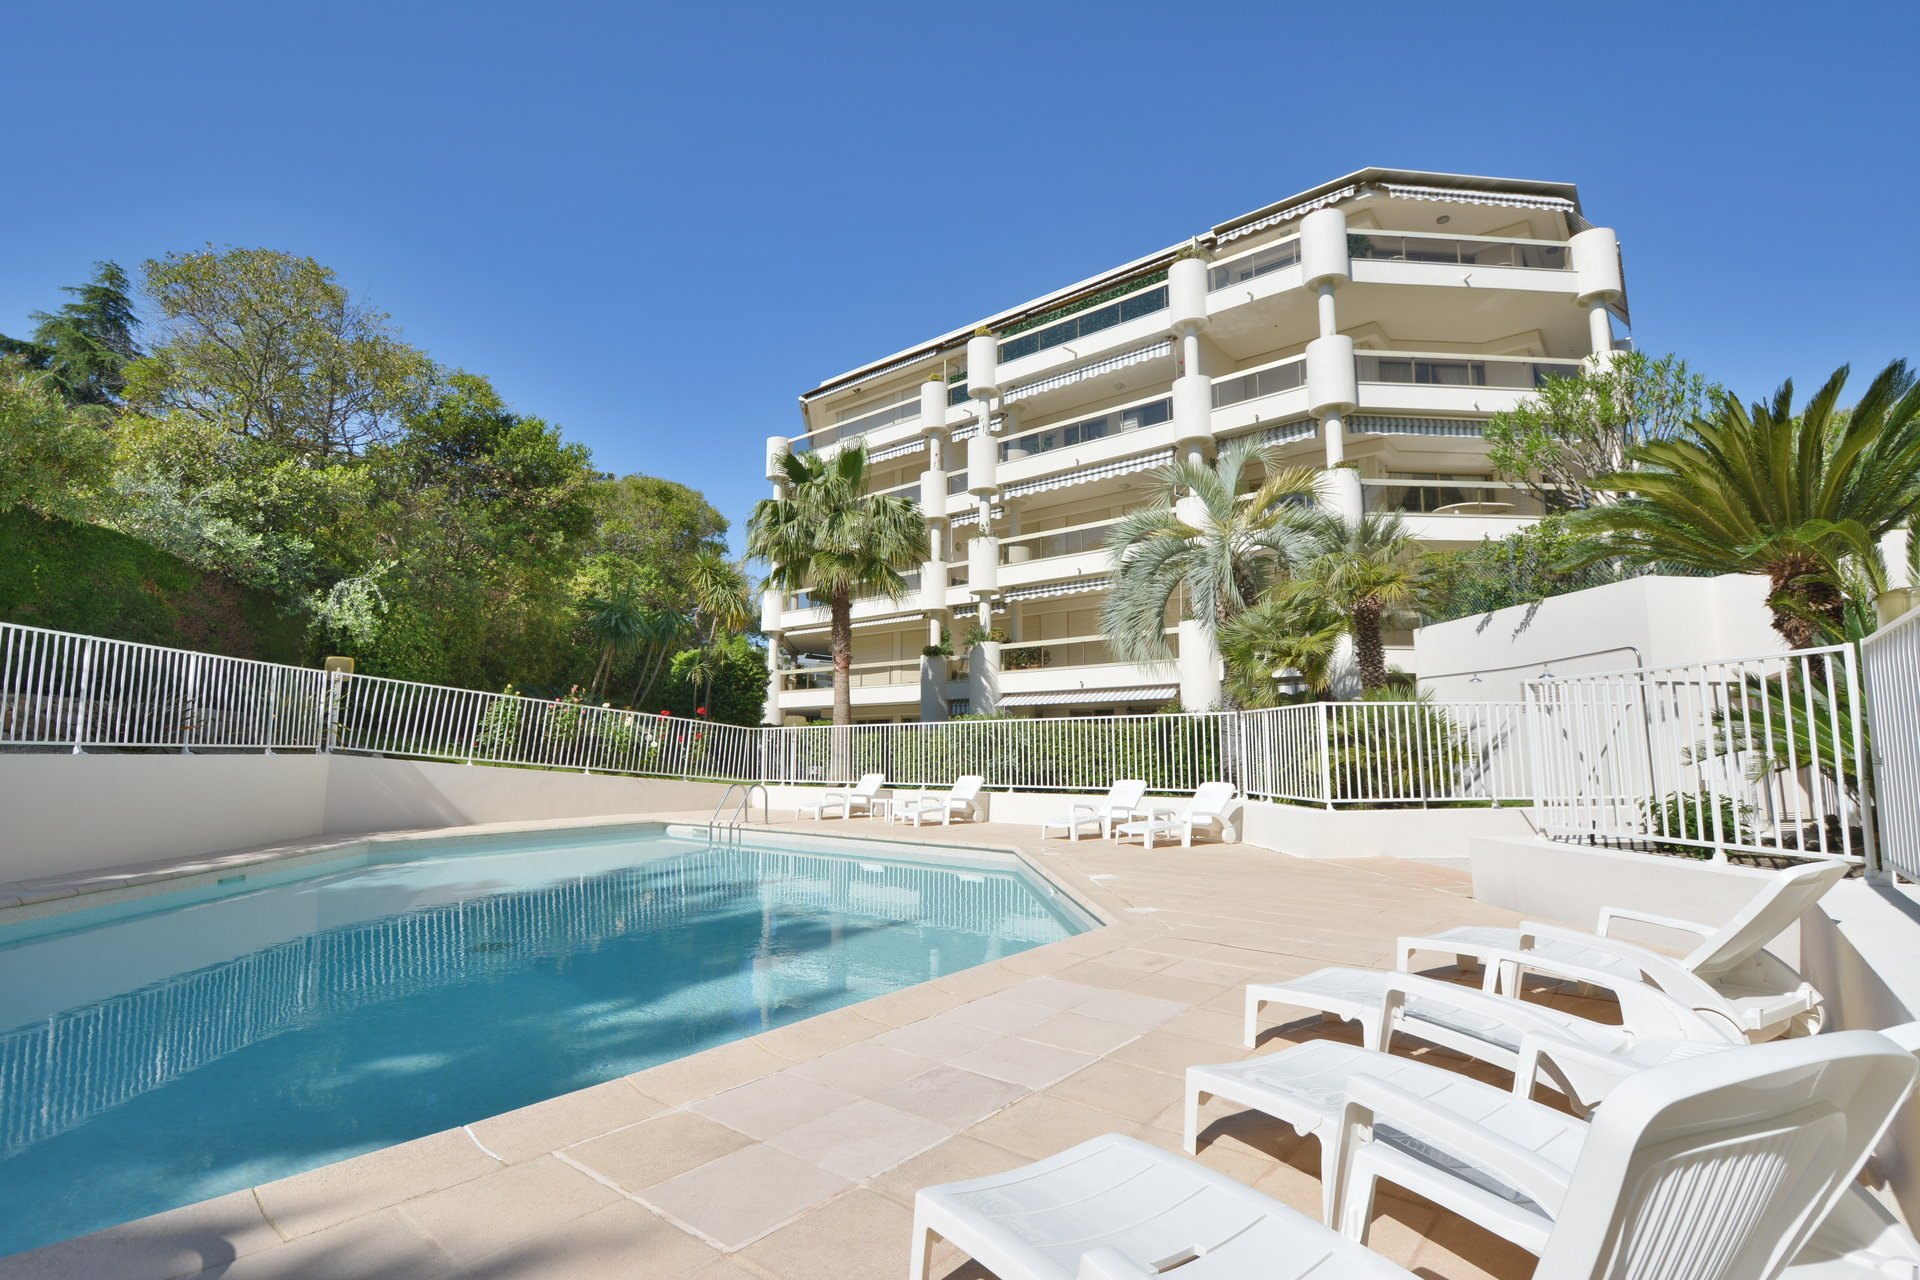 2 bedroom apartment - Recent residence - Swimming pool - Sea views